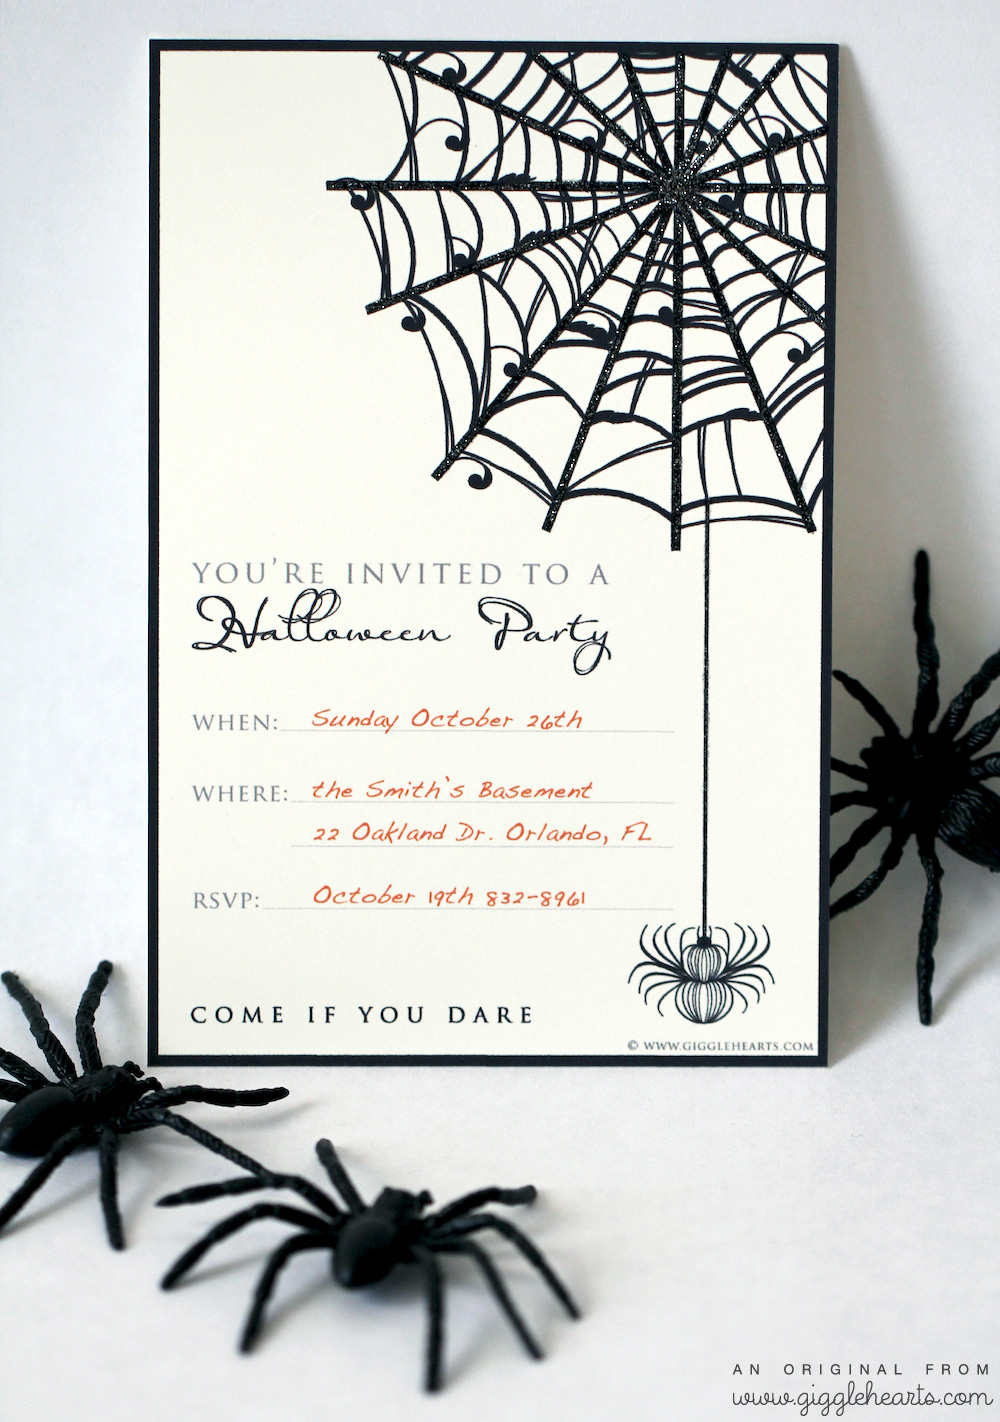 image about Printable Halloween Party Invitations called Totally free Halloween Bash Invitation Printable with Glitter for a